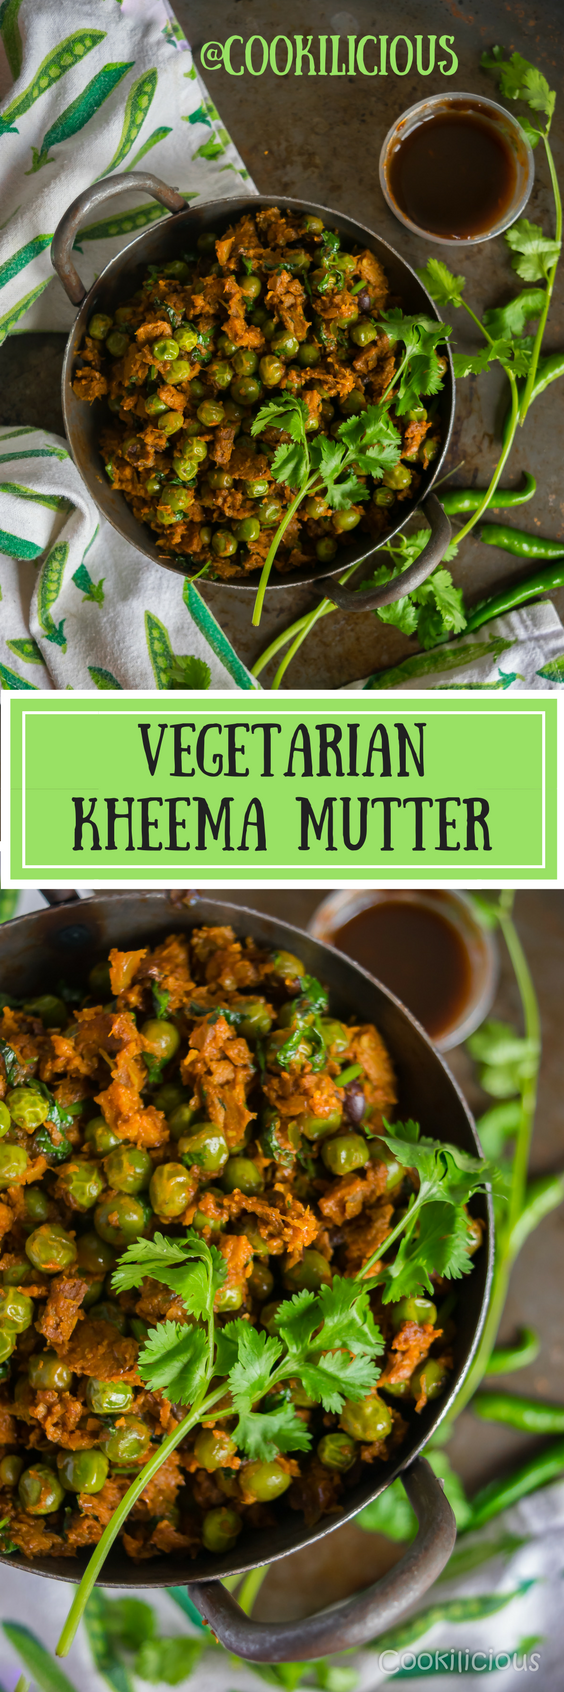 A hearty, aromatic Indian vegetarian/vegan curry made with Chipotle Black Bean Crumbles & green peas. One great way to incorporate protein into your diet is by converting a meat recipe to meatless without compromising on its taste & this dish delivers just that.  via @cookiliciousveg